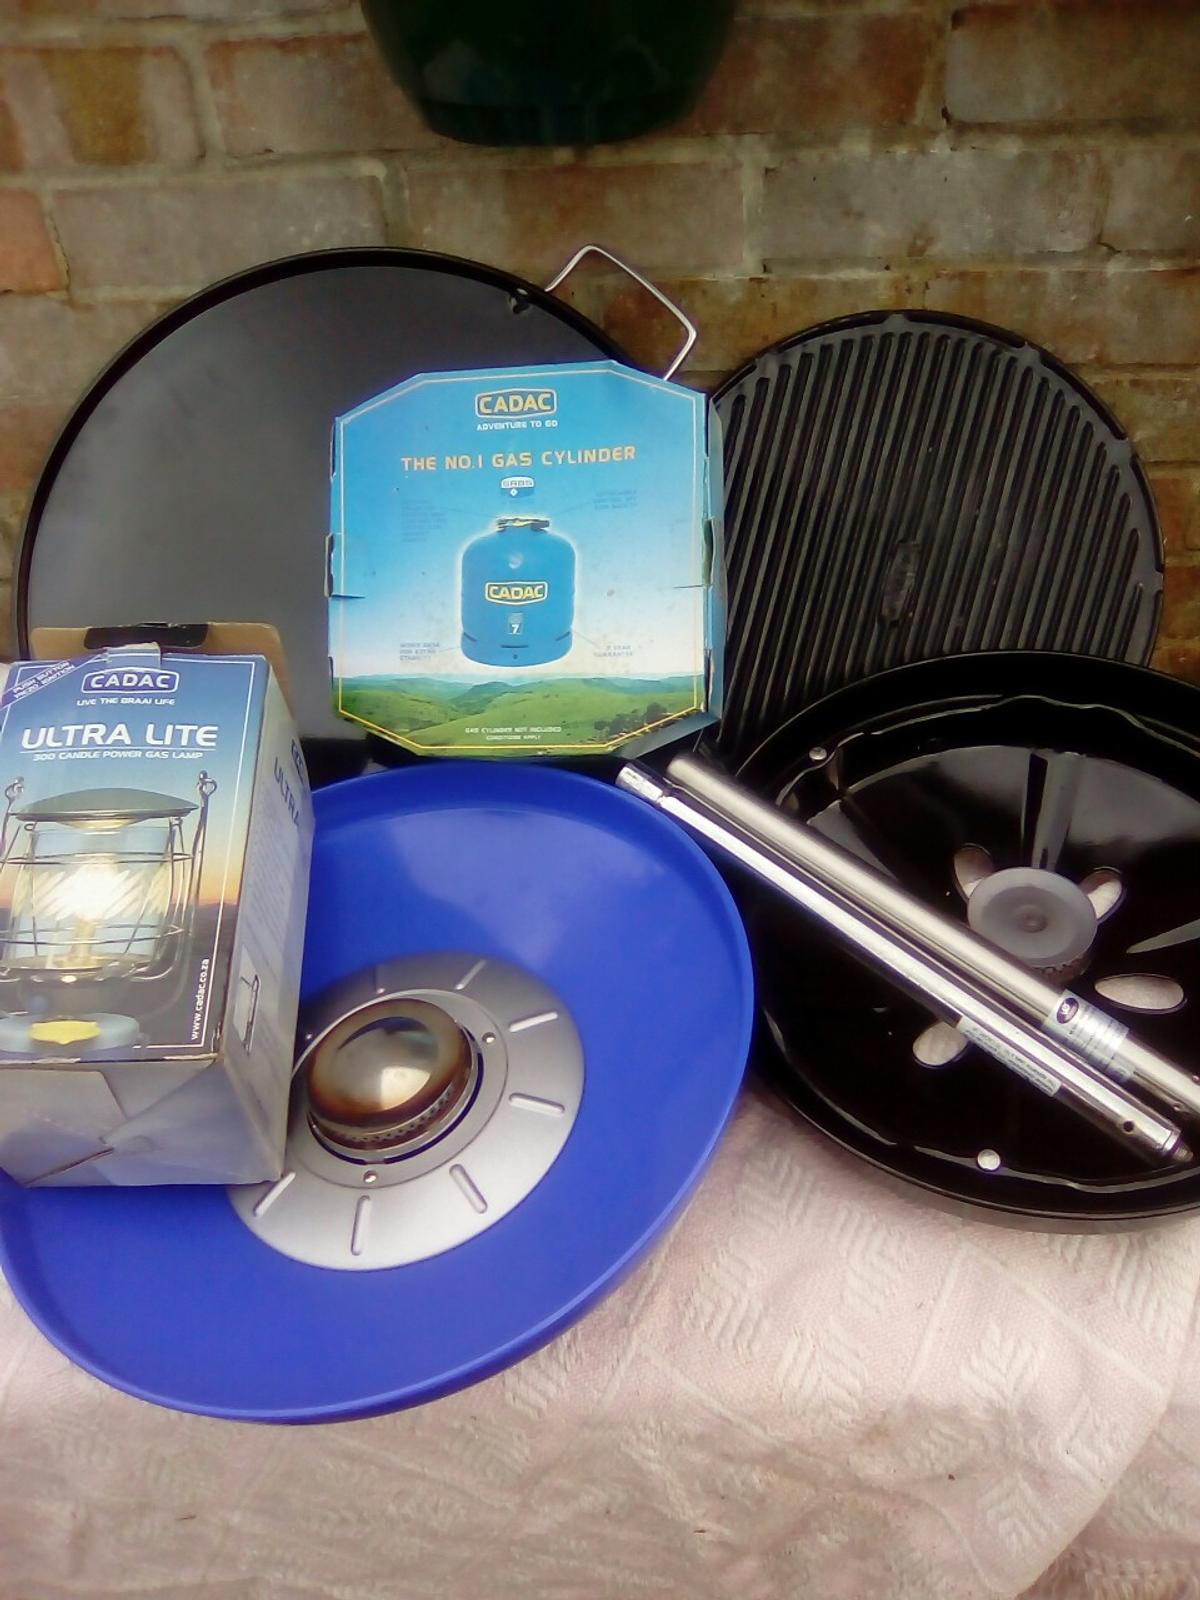 Cadac Adventure To Go.Cadac Camping Barbecue Stove Accessories In So18 Southampton For